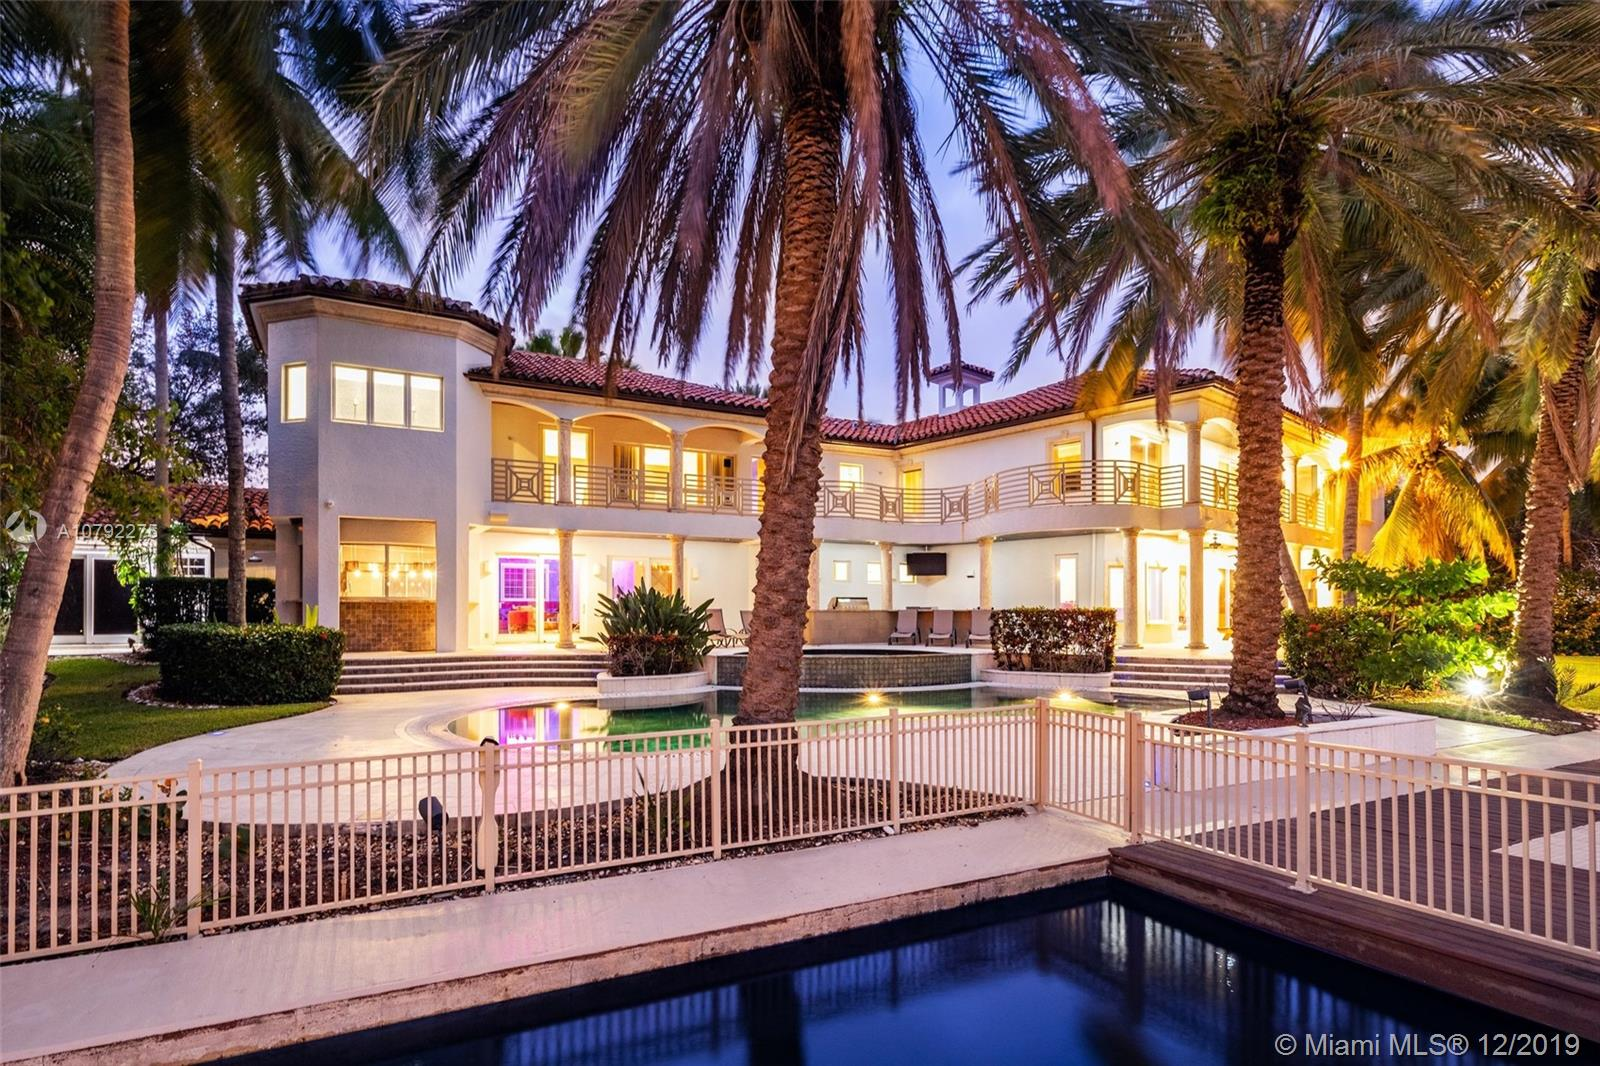 Stunning entertainers paradise boasting 154 feet of deep water frontage on a 19,500 Sq Ft lot. 2 master bedrooms suites and 3 ensuite bedrooms. High ceilings, high impact glass throughout, new 80KW generator, hair salon. Private entertainment wing with game lounge, outdoor kitchen encompassing spacious backyard and pool. 1,600 sq ft featuring unique car display. Minutes to Las Olas, the beach, airport, and major highways.